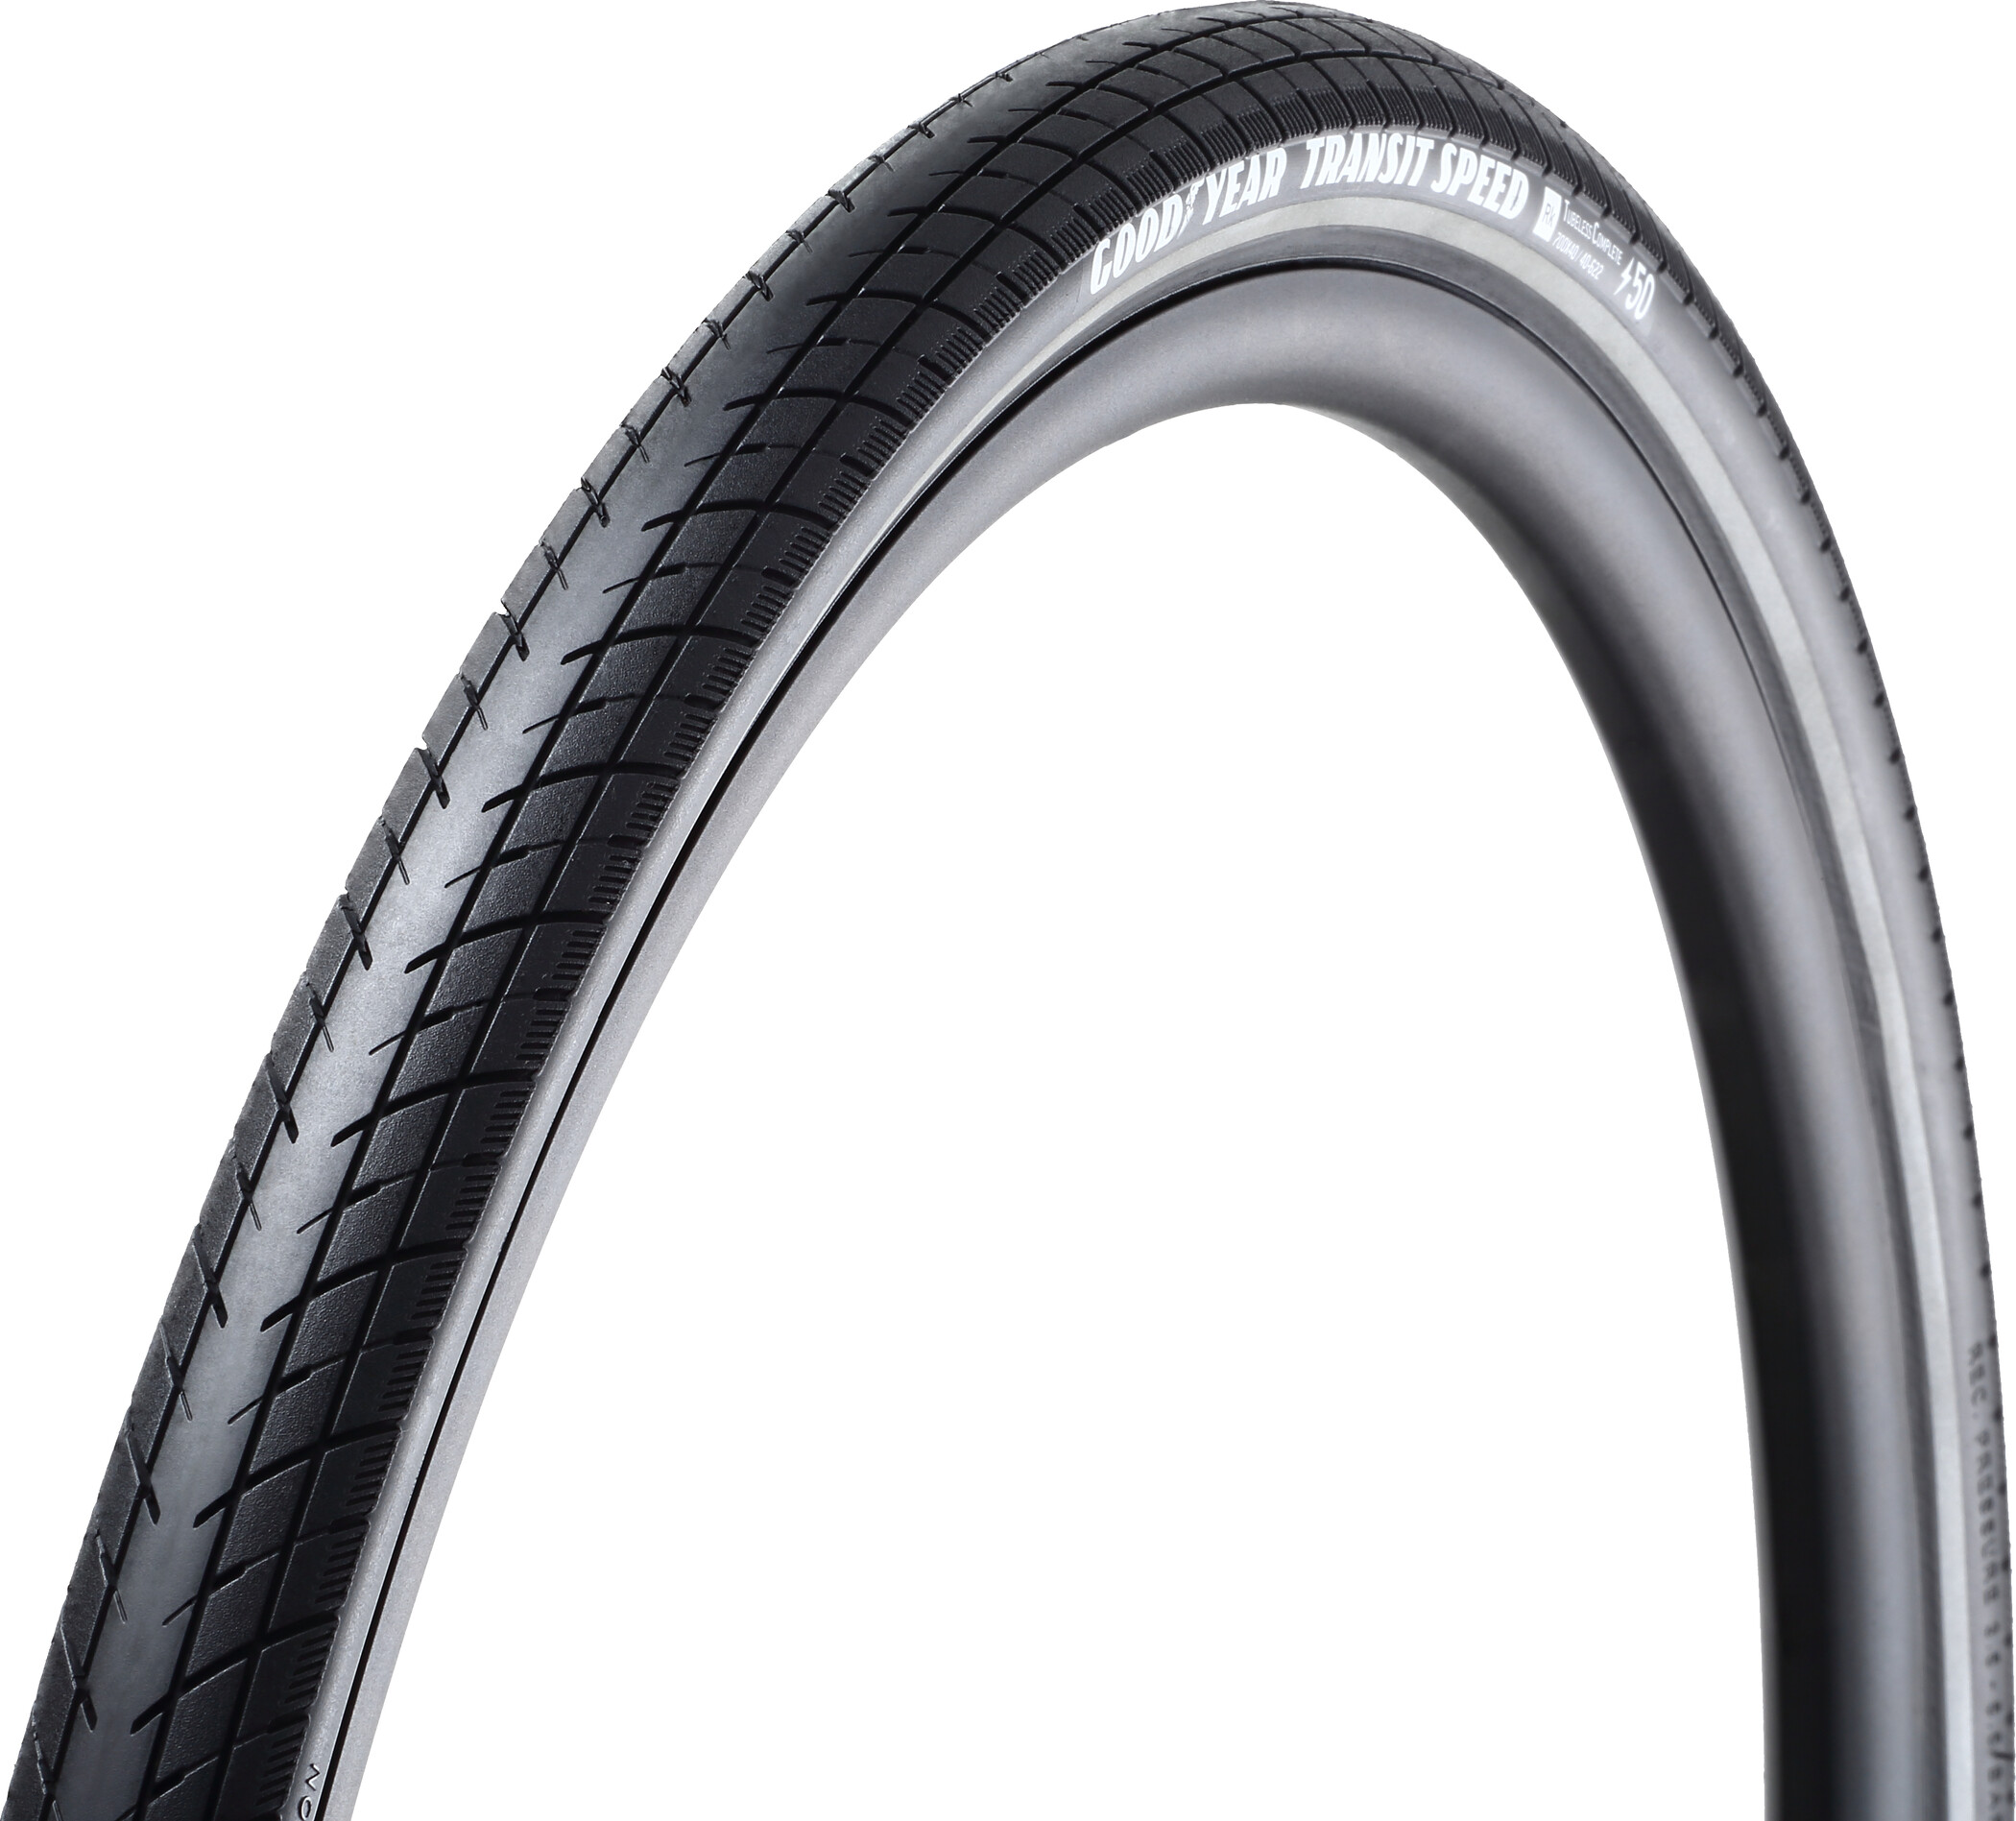 Goodyear Transit Speed Foldedæk 35-622 Tubeless Complete Dynamic Silica4 e50, black reflected (2019)   Tyres